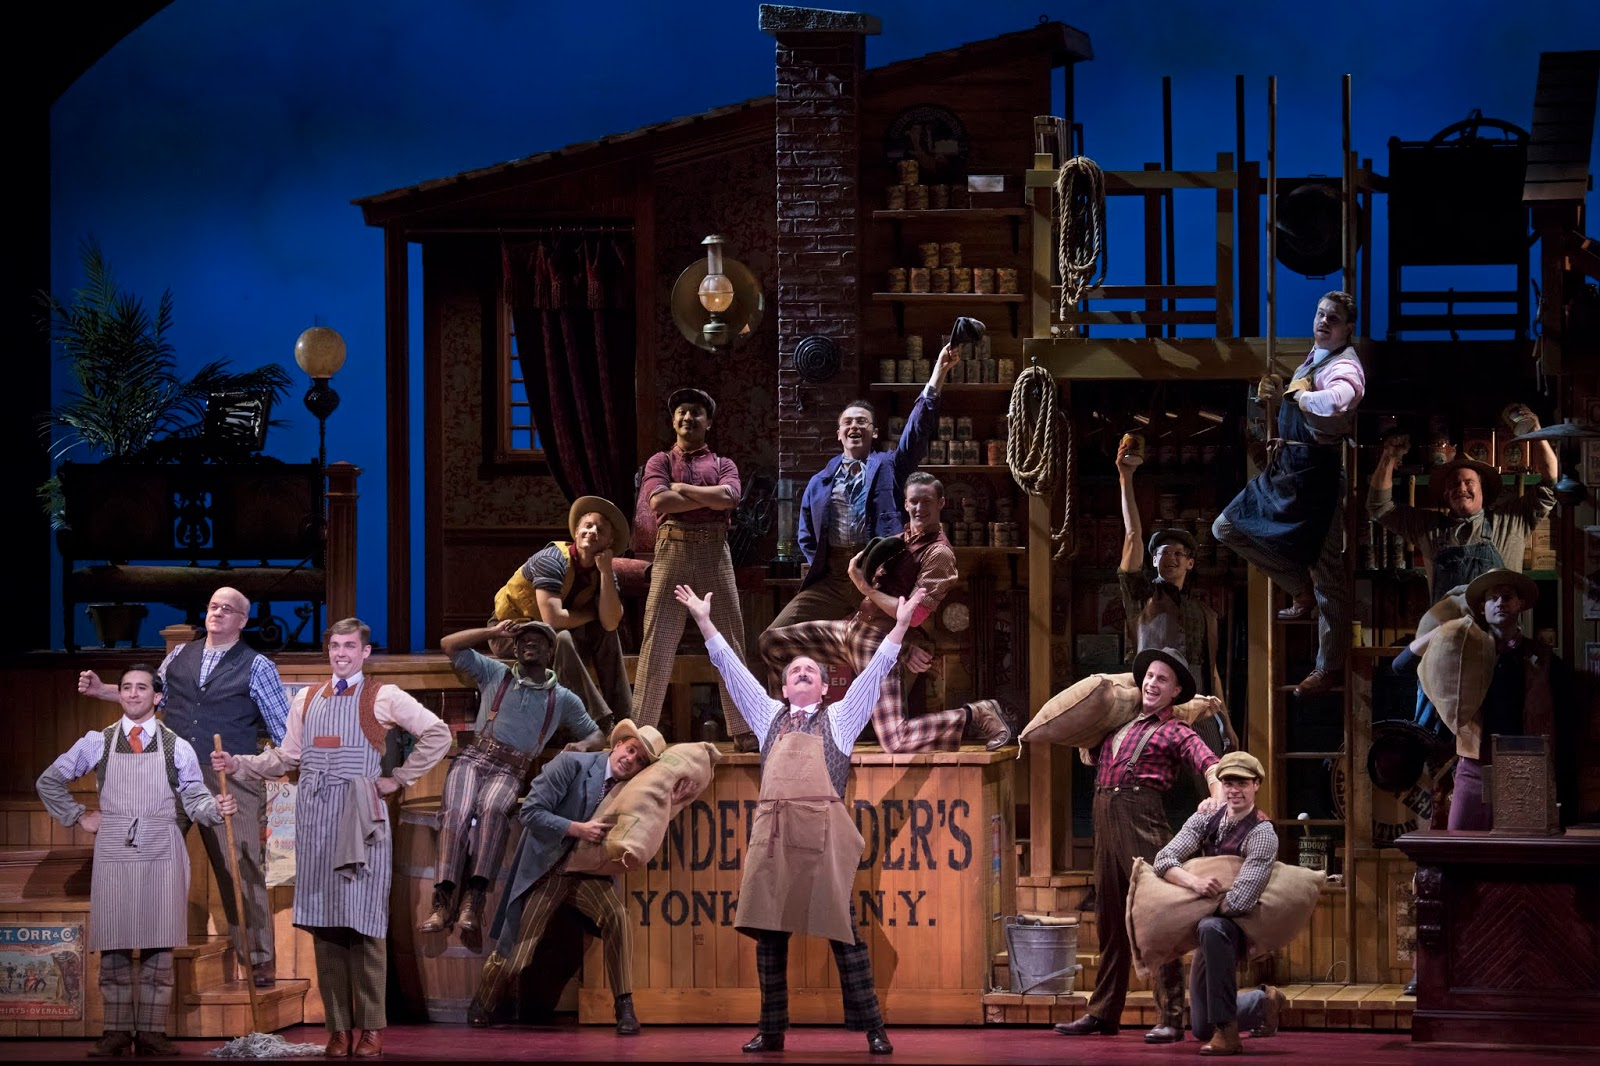 UPCOMING: Hello, Dolly!, November 19 - December 1, Fisher Theatre, Detroit